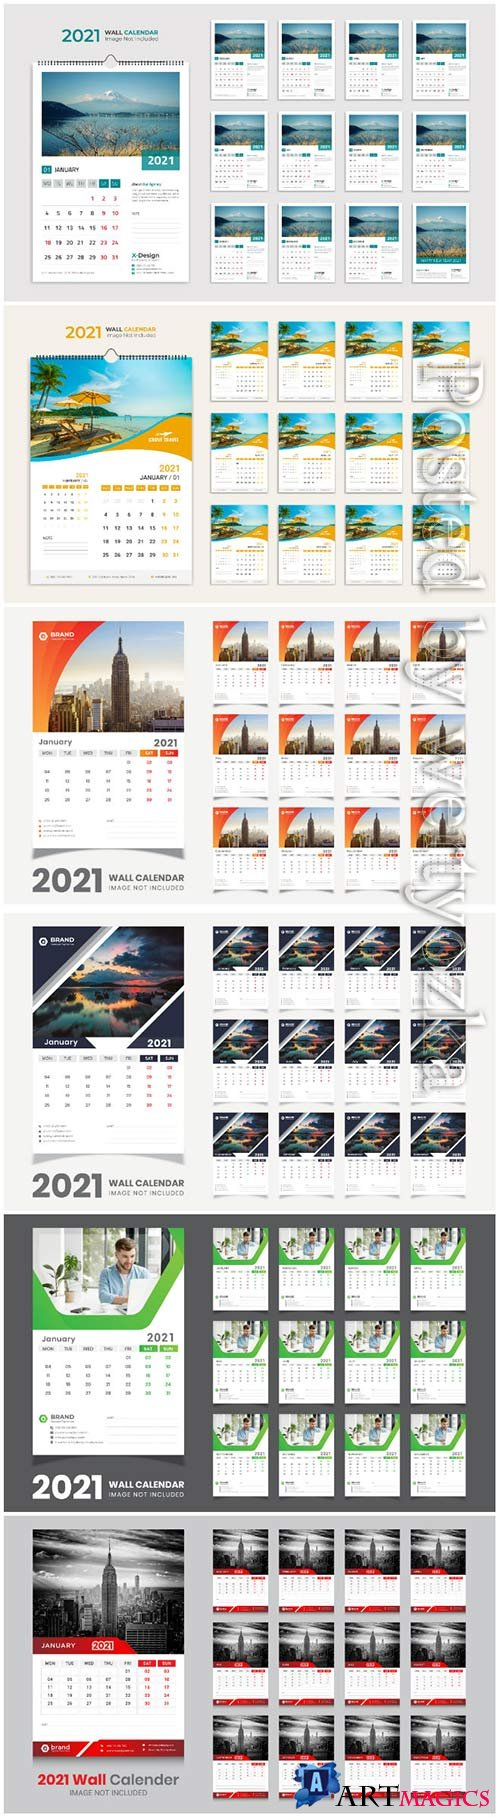 Desk calendar 2021 template design for new year vol 3